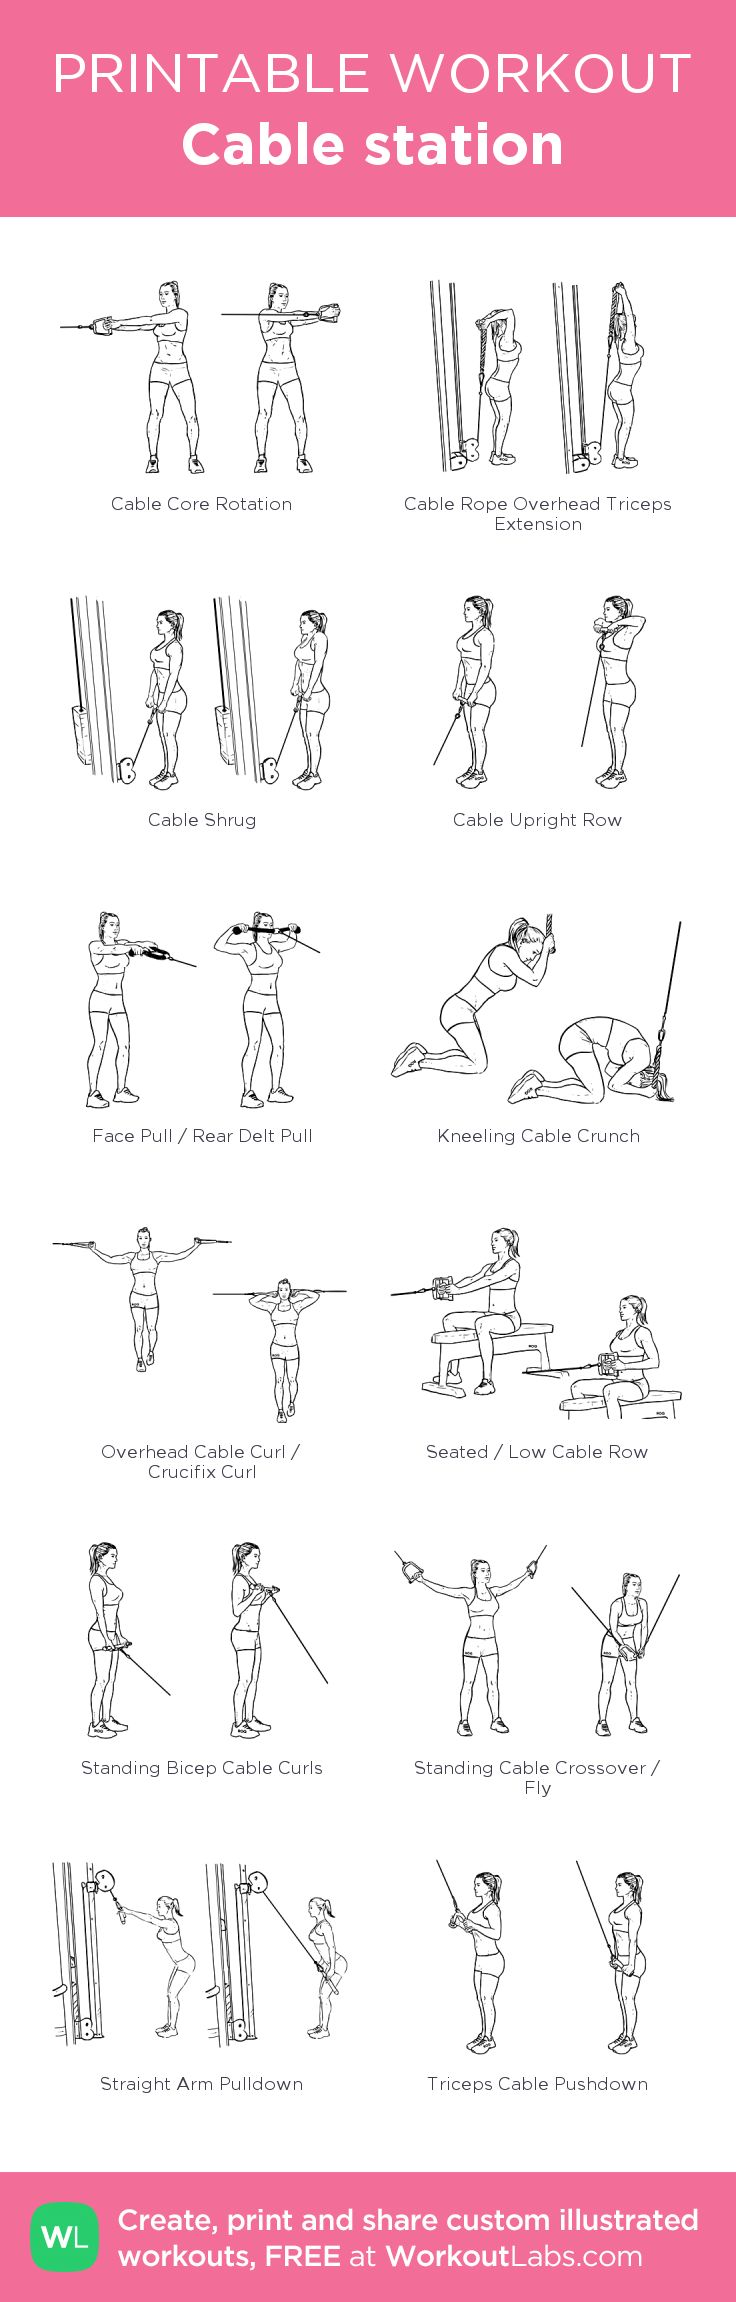 cable machine chest workout